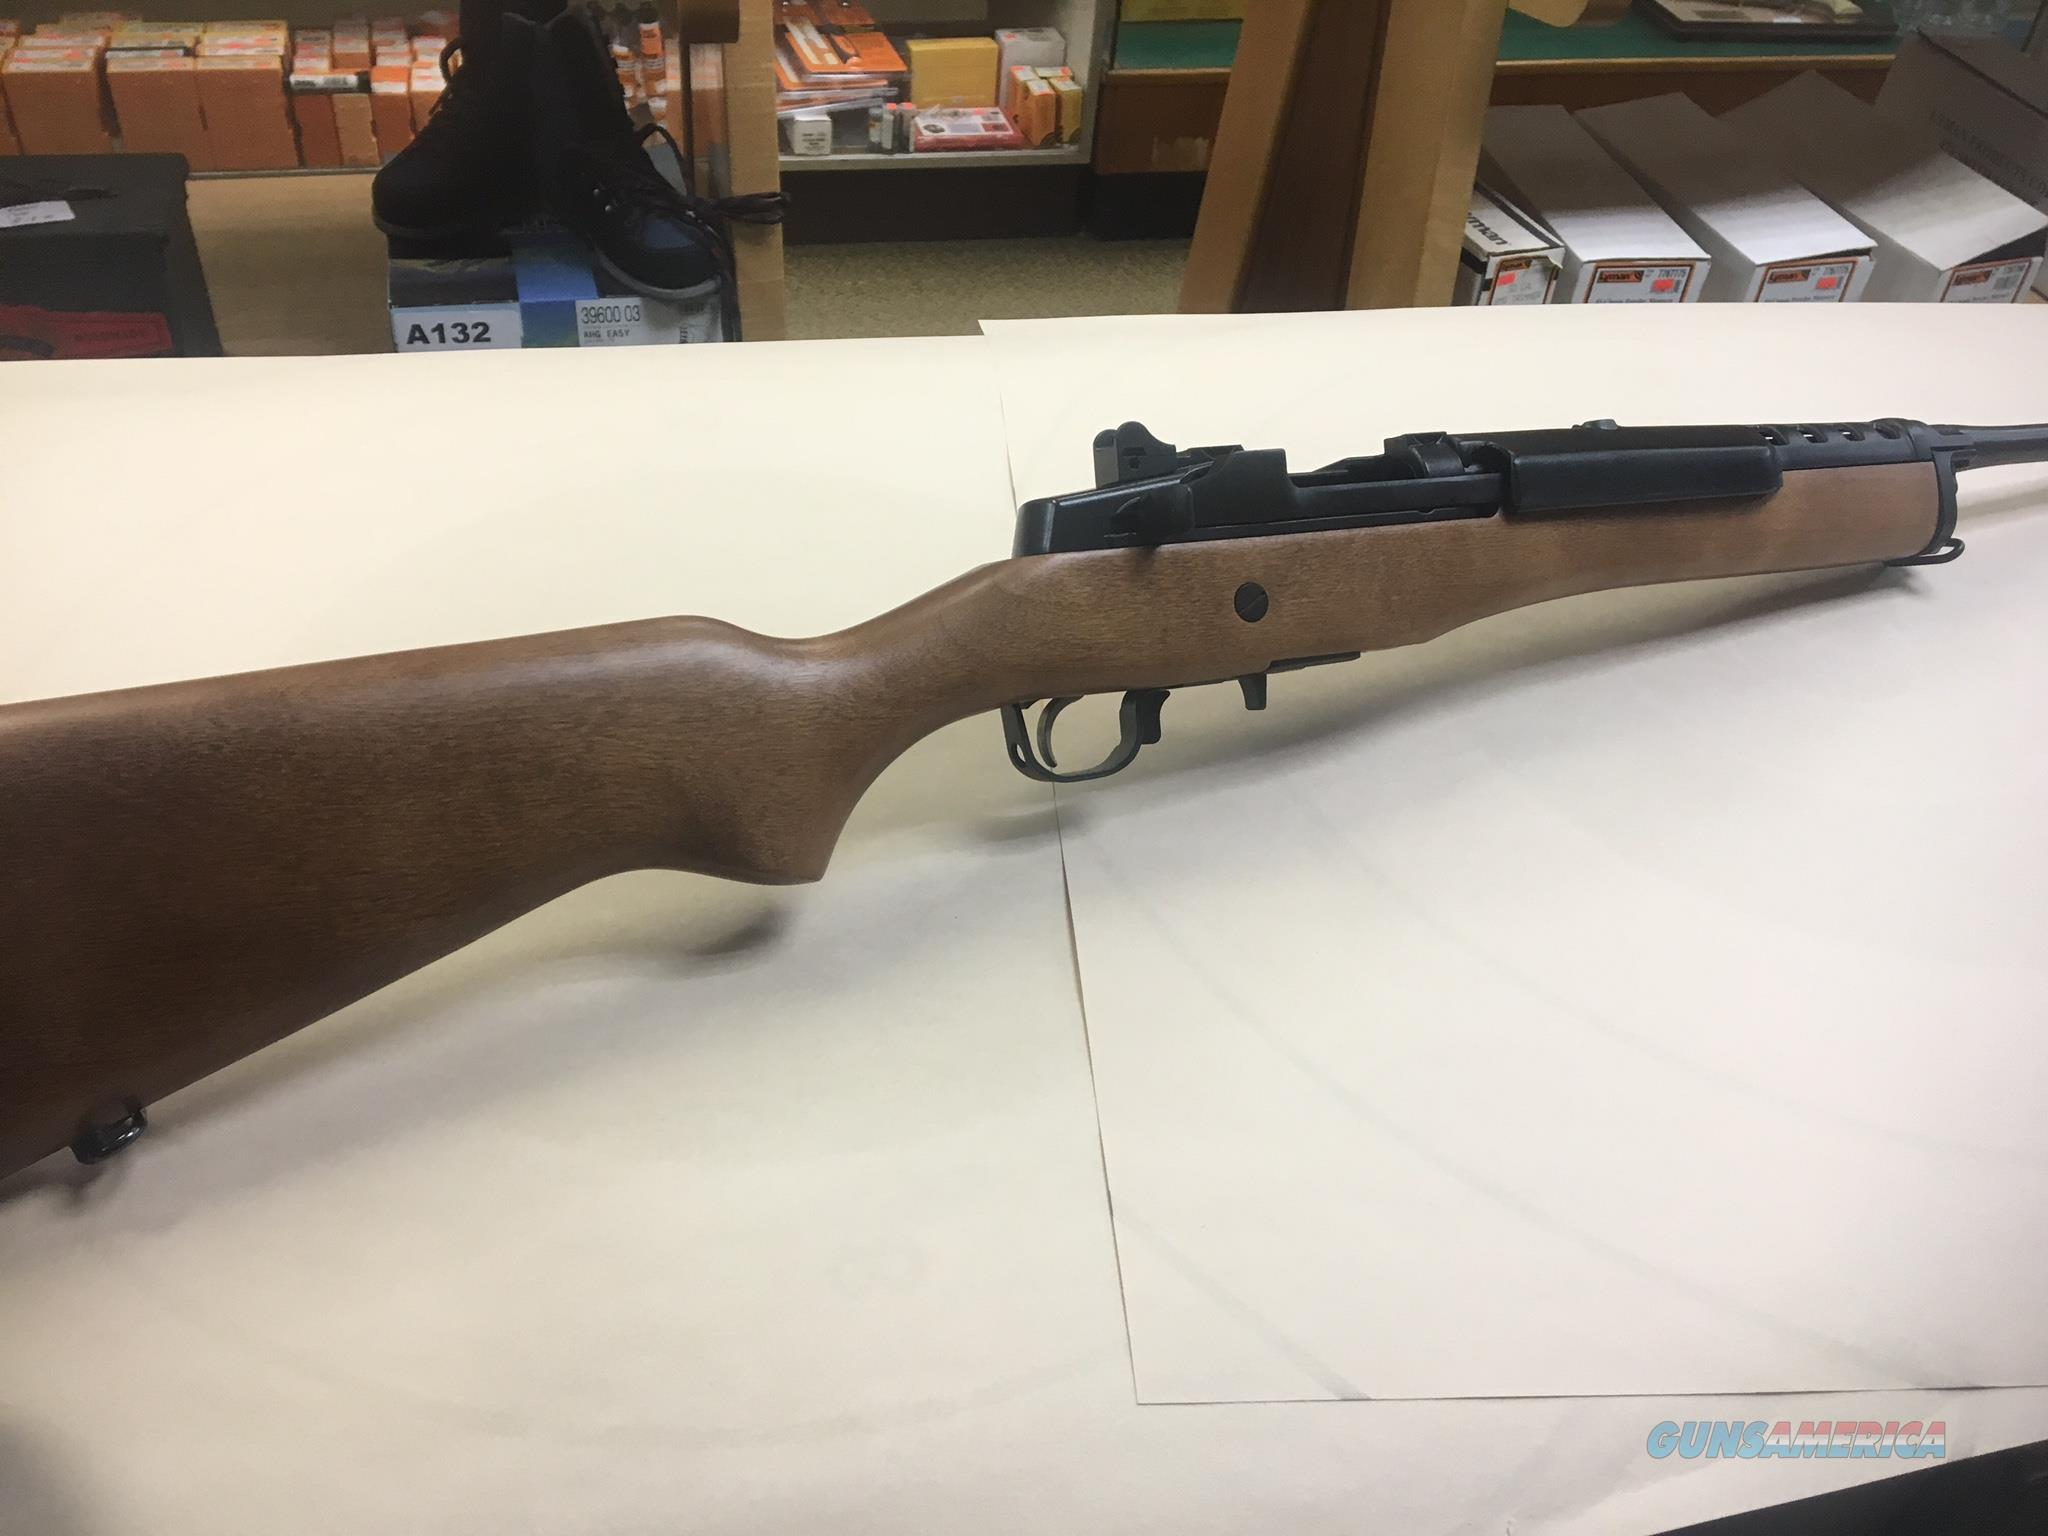 Ruger model mini-14 with wood stock 5.56 Caliber  Guns > Rifles > Ruger Rifles > Mini-14 Type